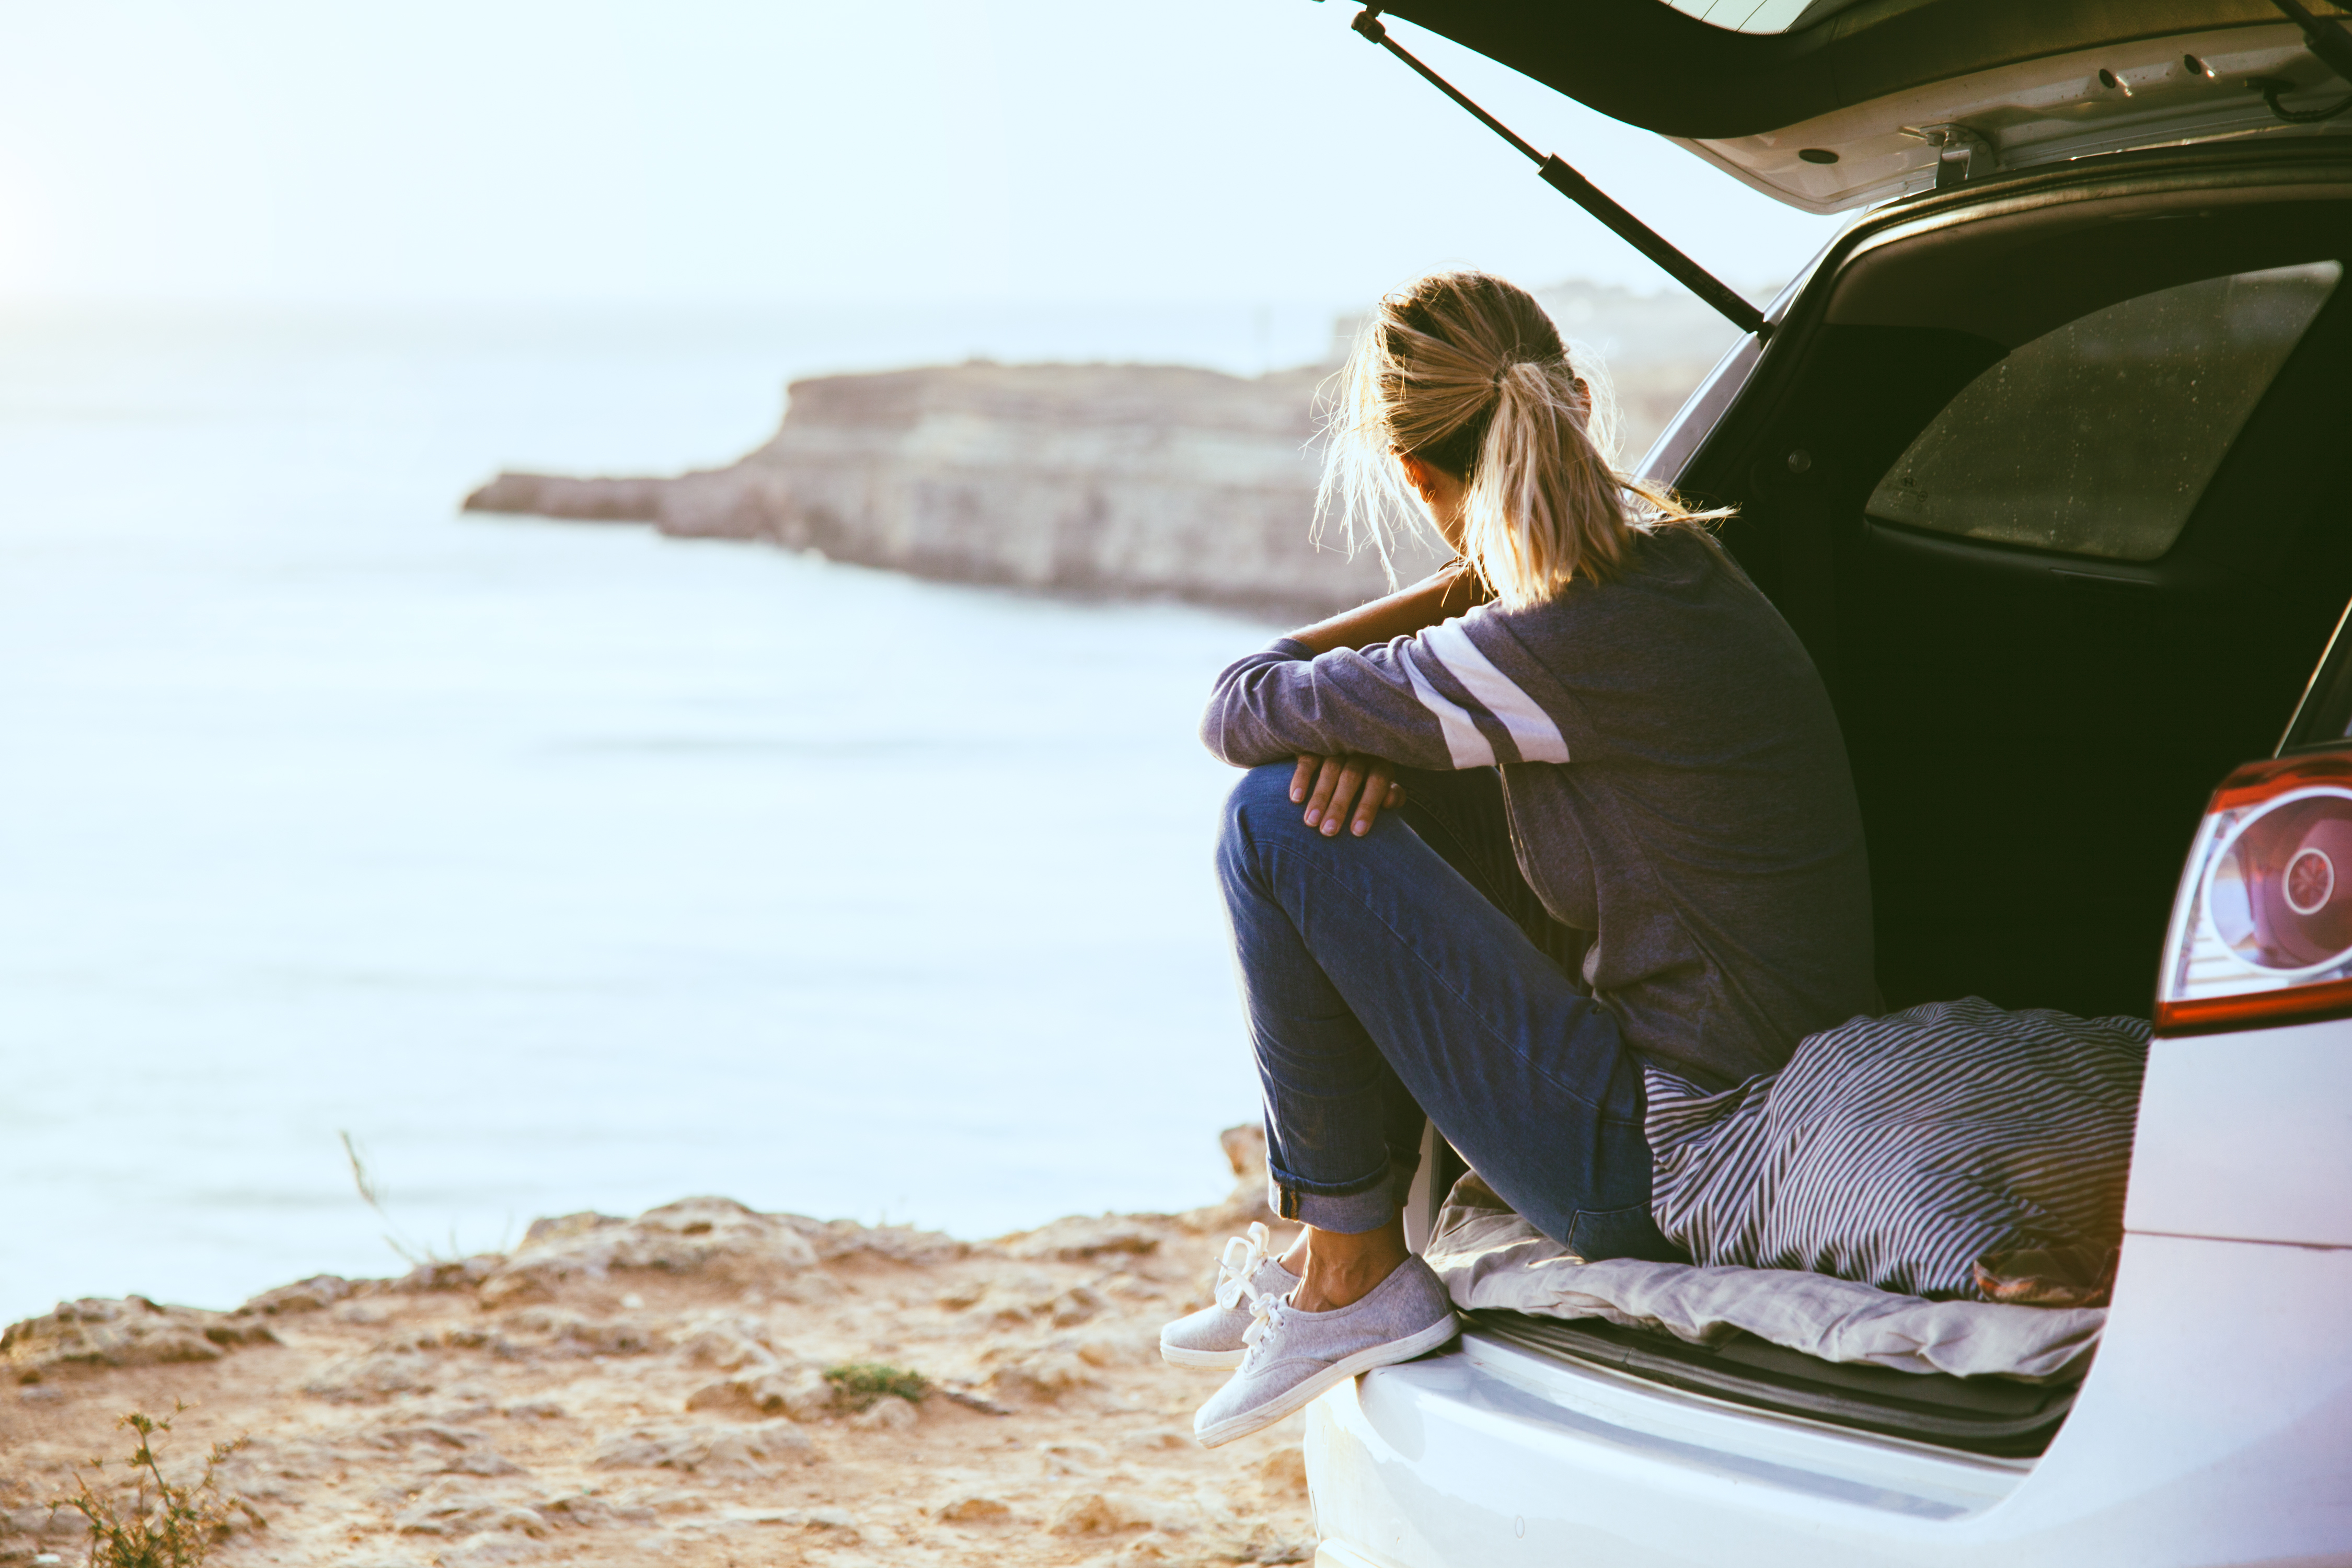 Packing your car for a camping trip